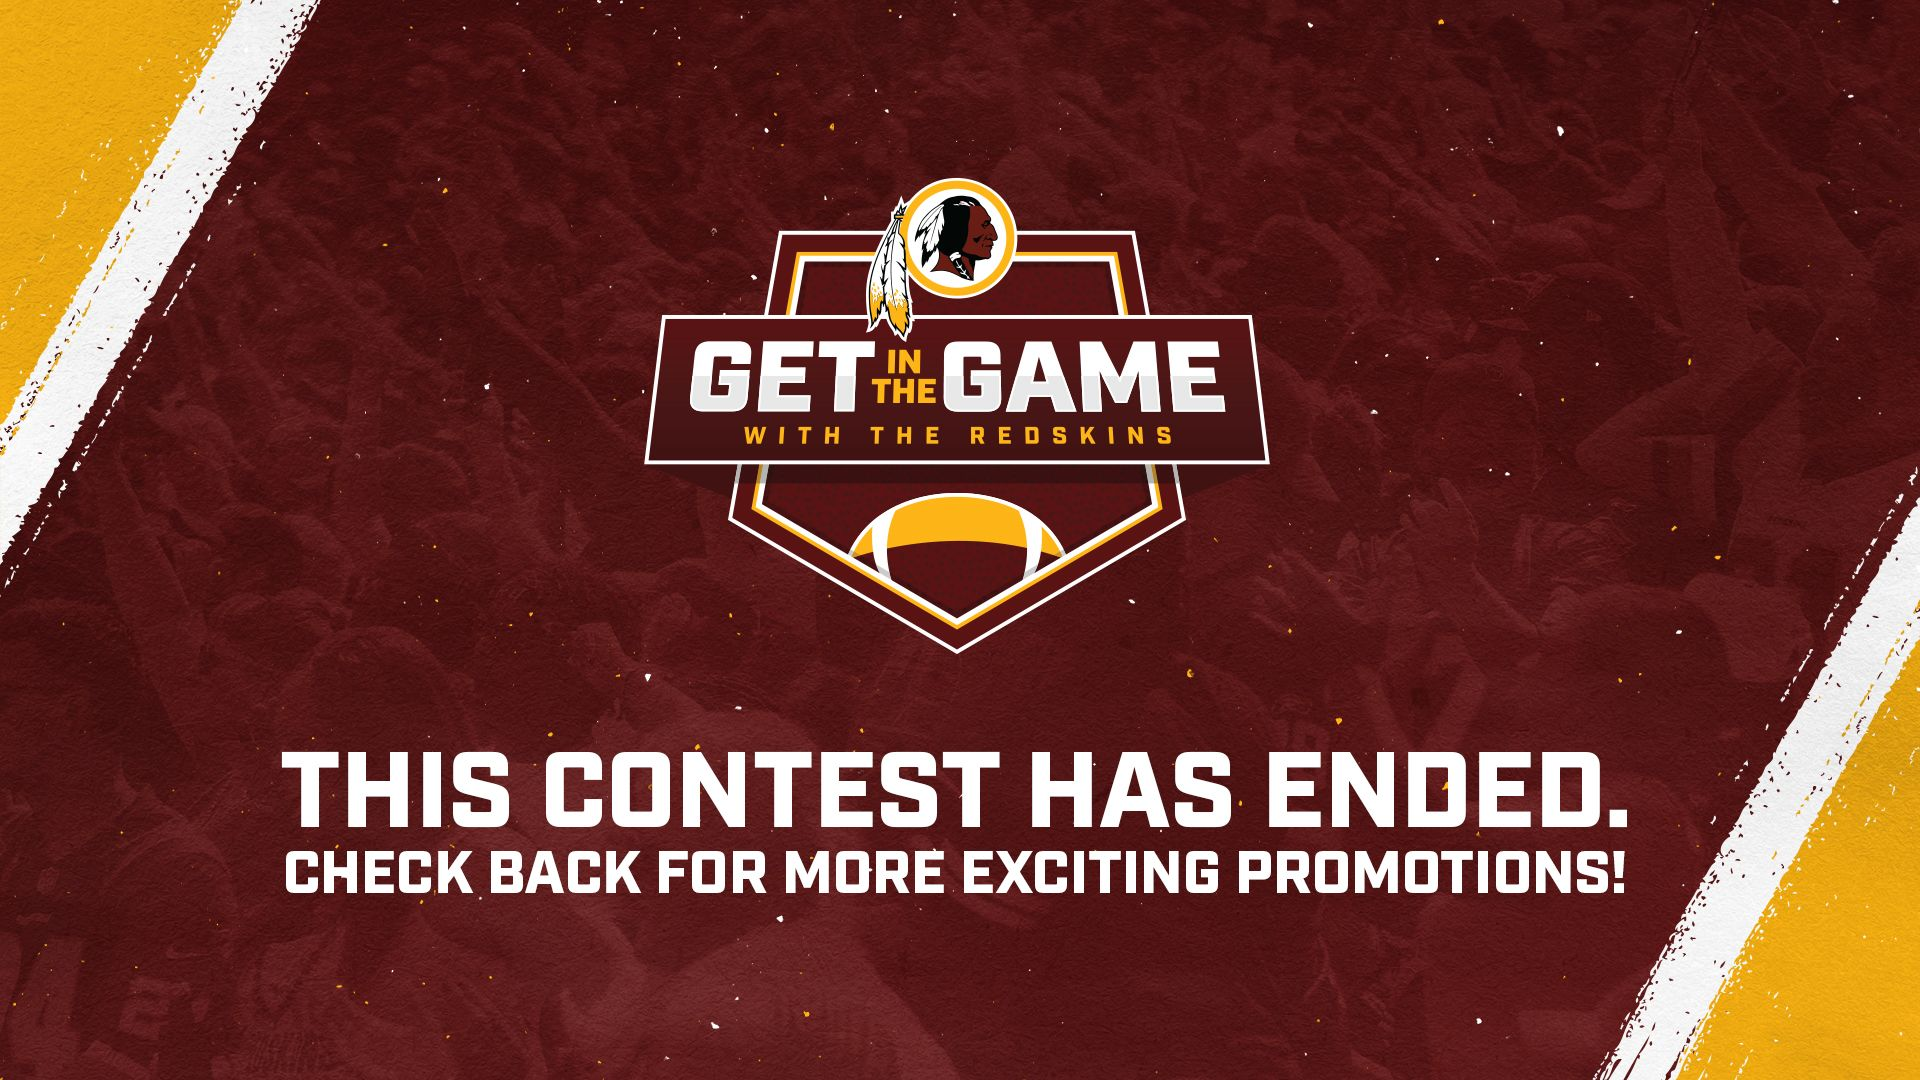 get_in_the_game-header-contest_ended-16x9